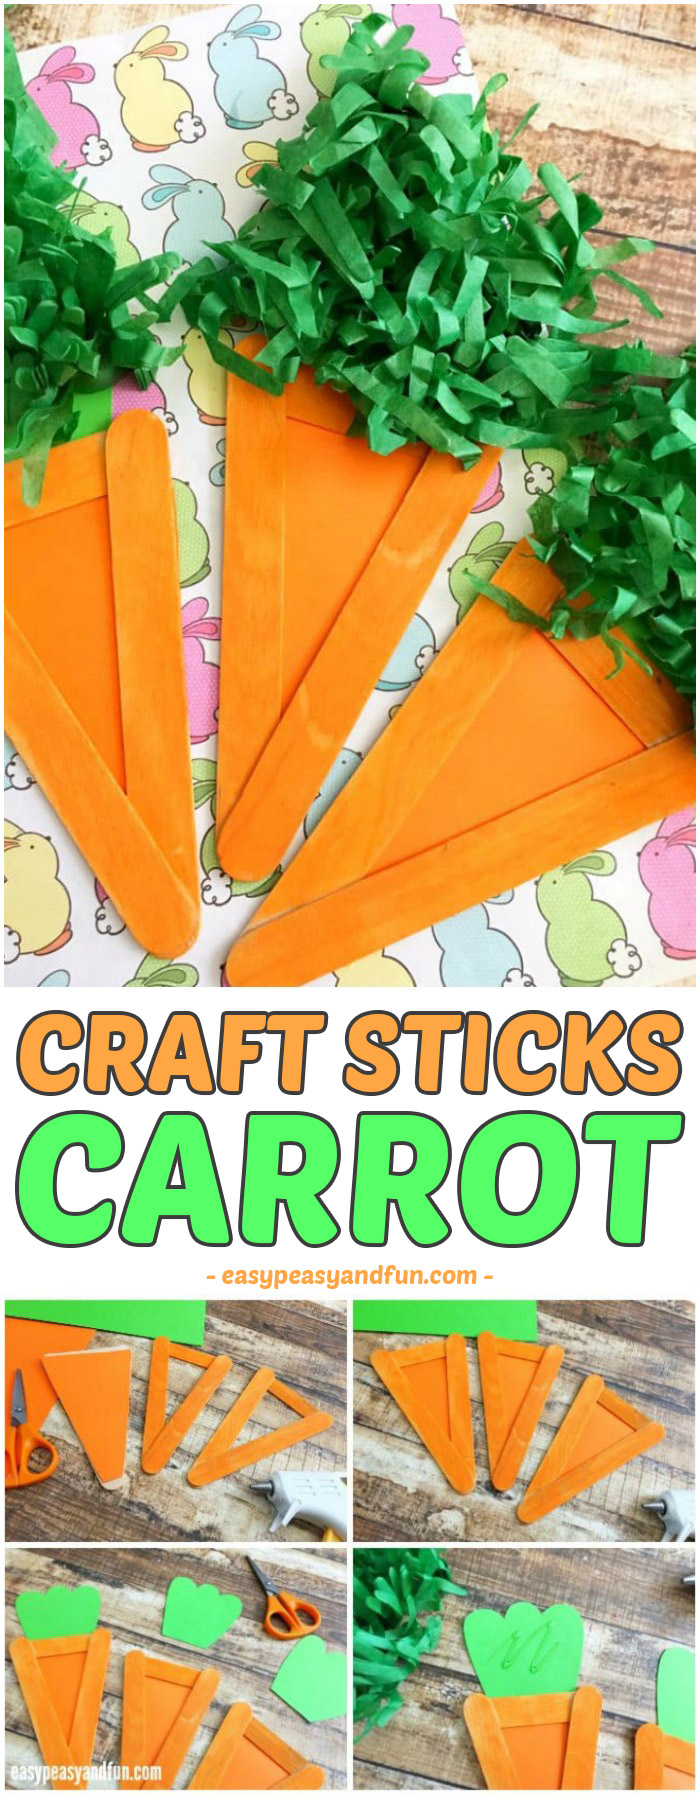 Carrot Craft  Easter Craft Idea for Kids  Easy Peasy and Fun